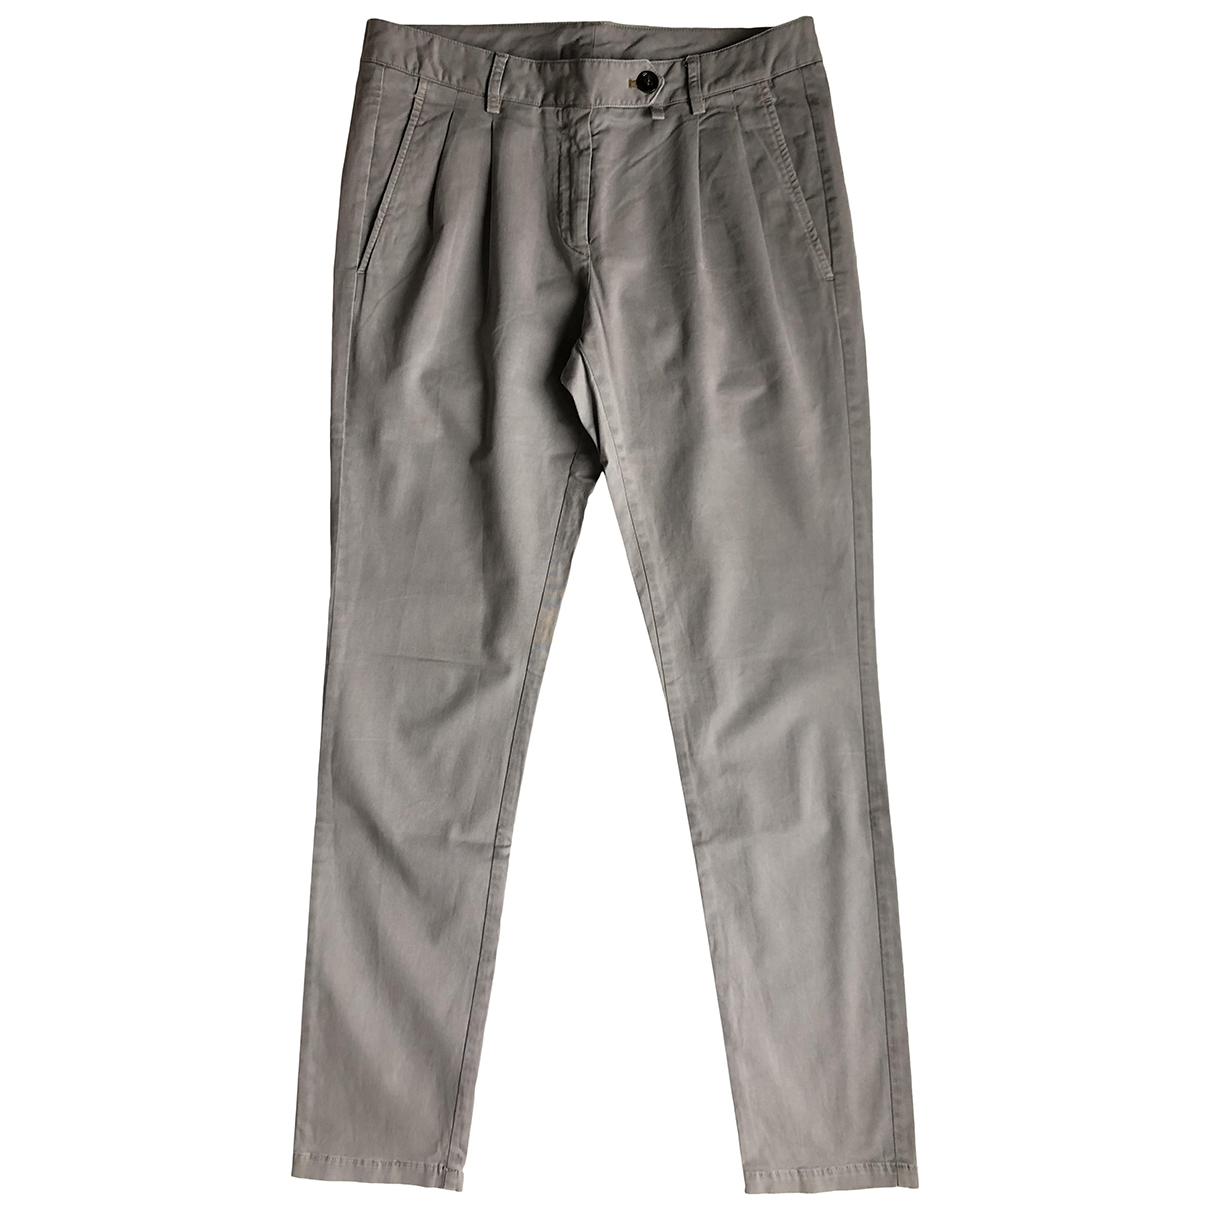 Mauro Grifoni \N Grey Cotton Trousers for Women 40 FR